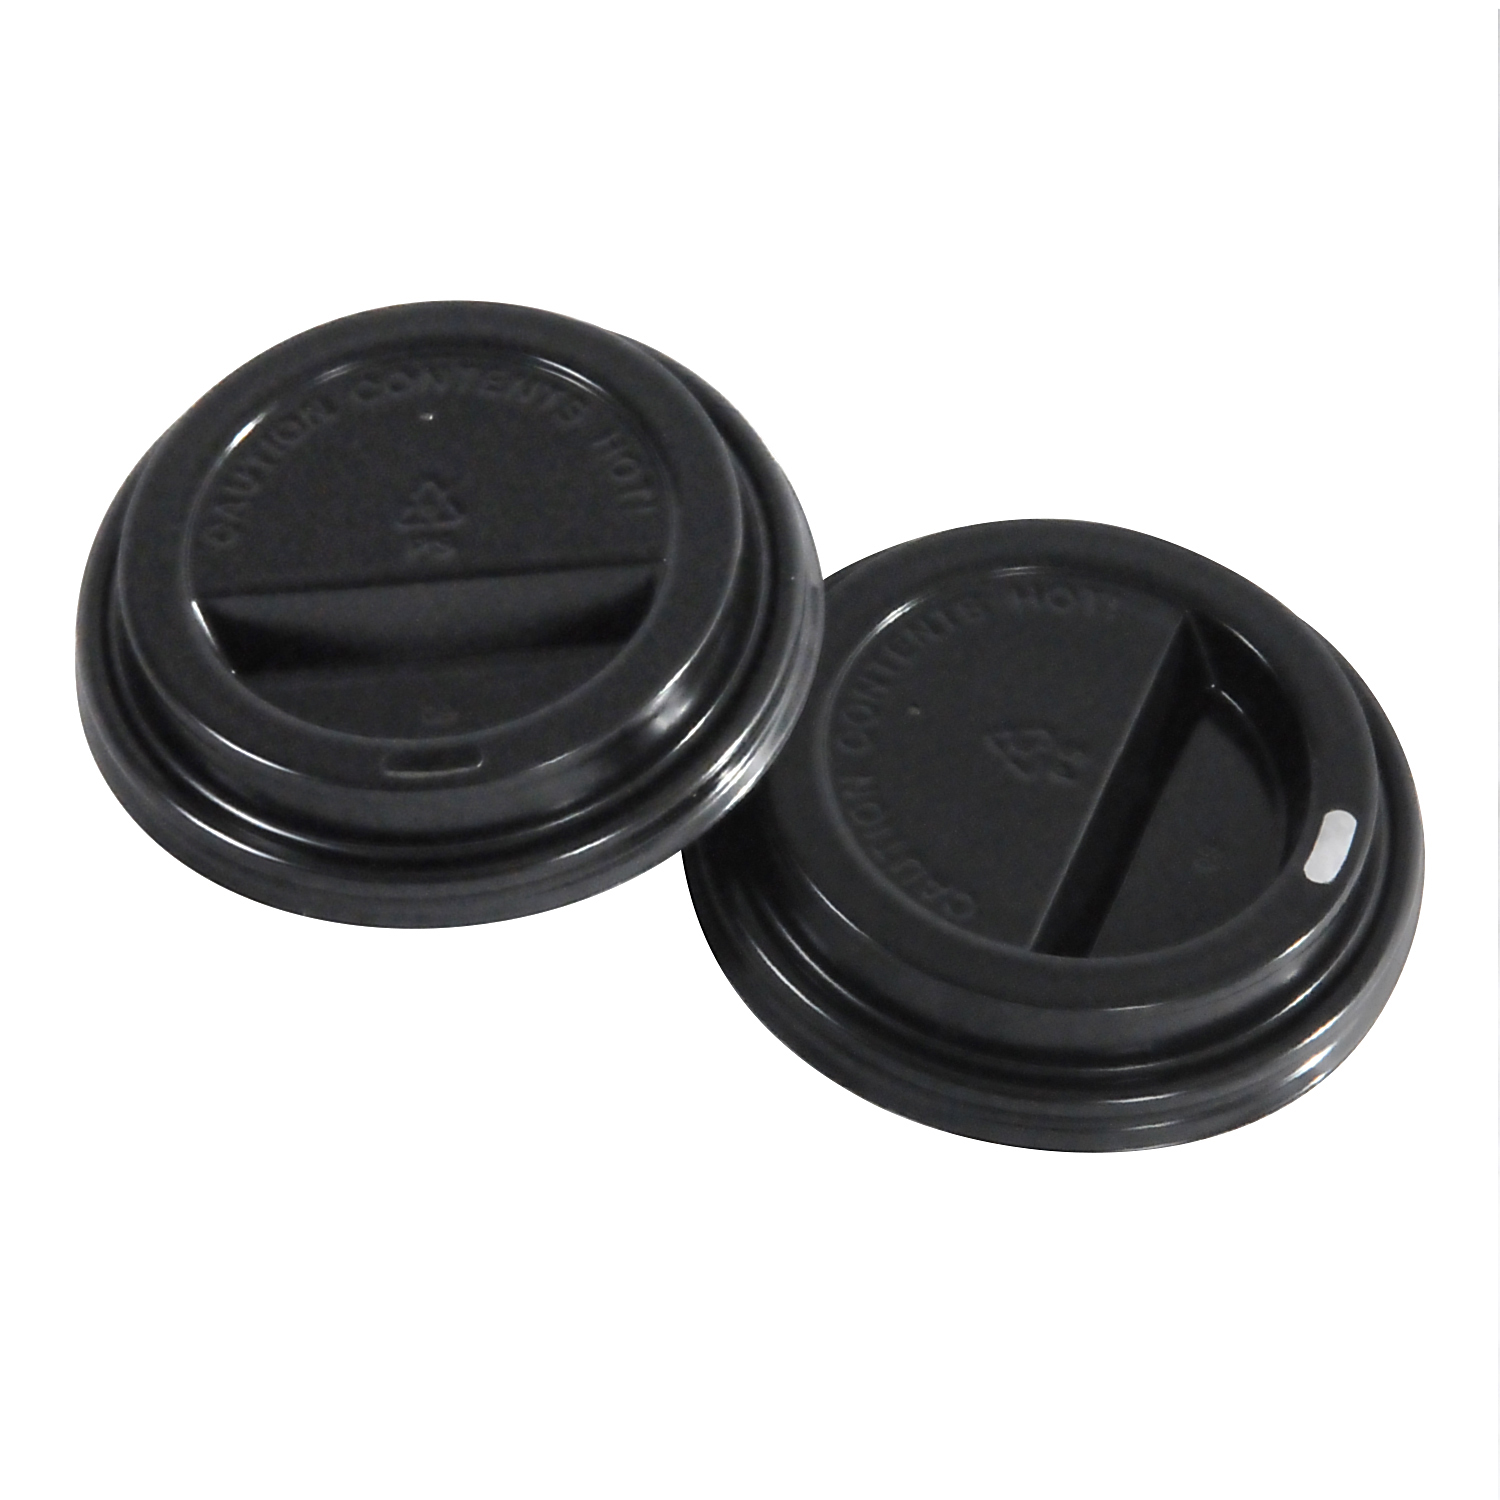 90mm Black Dome Lid